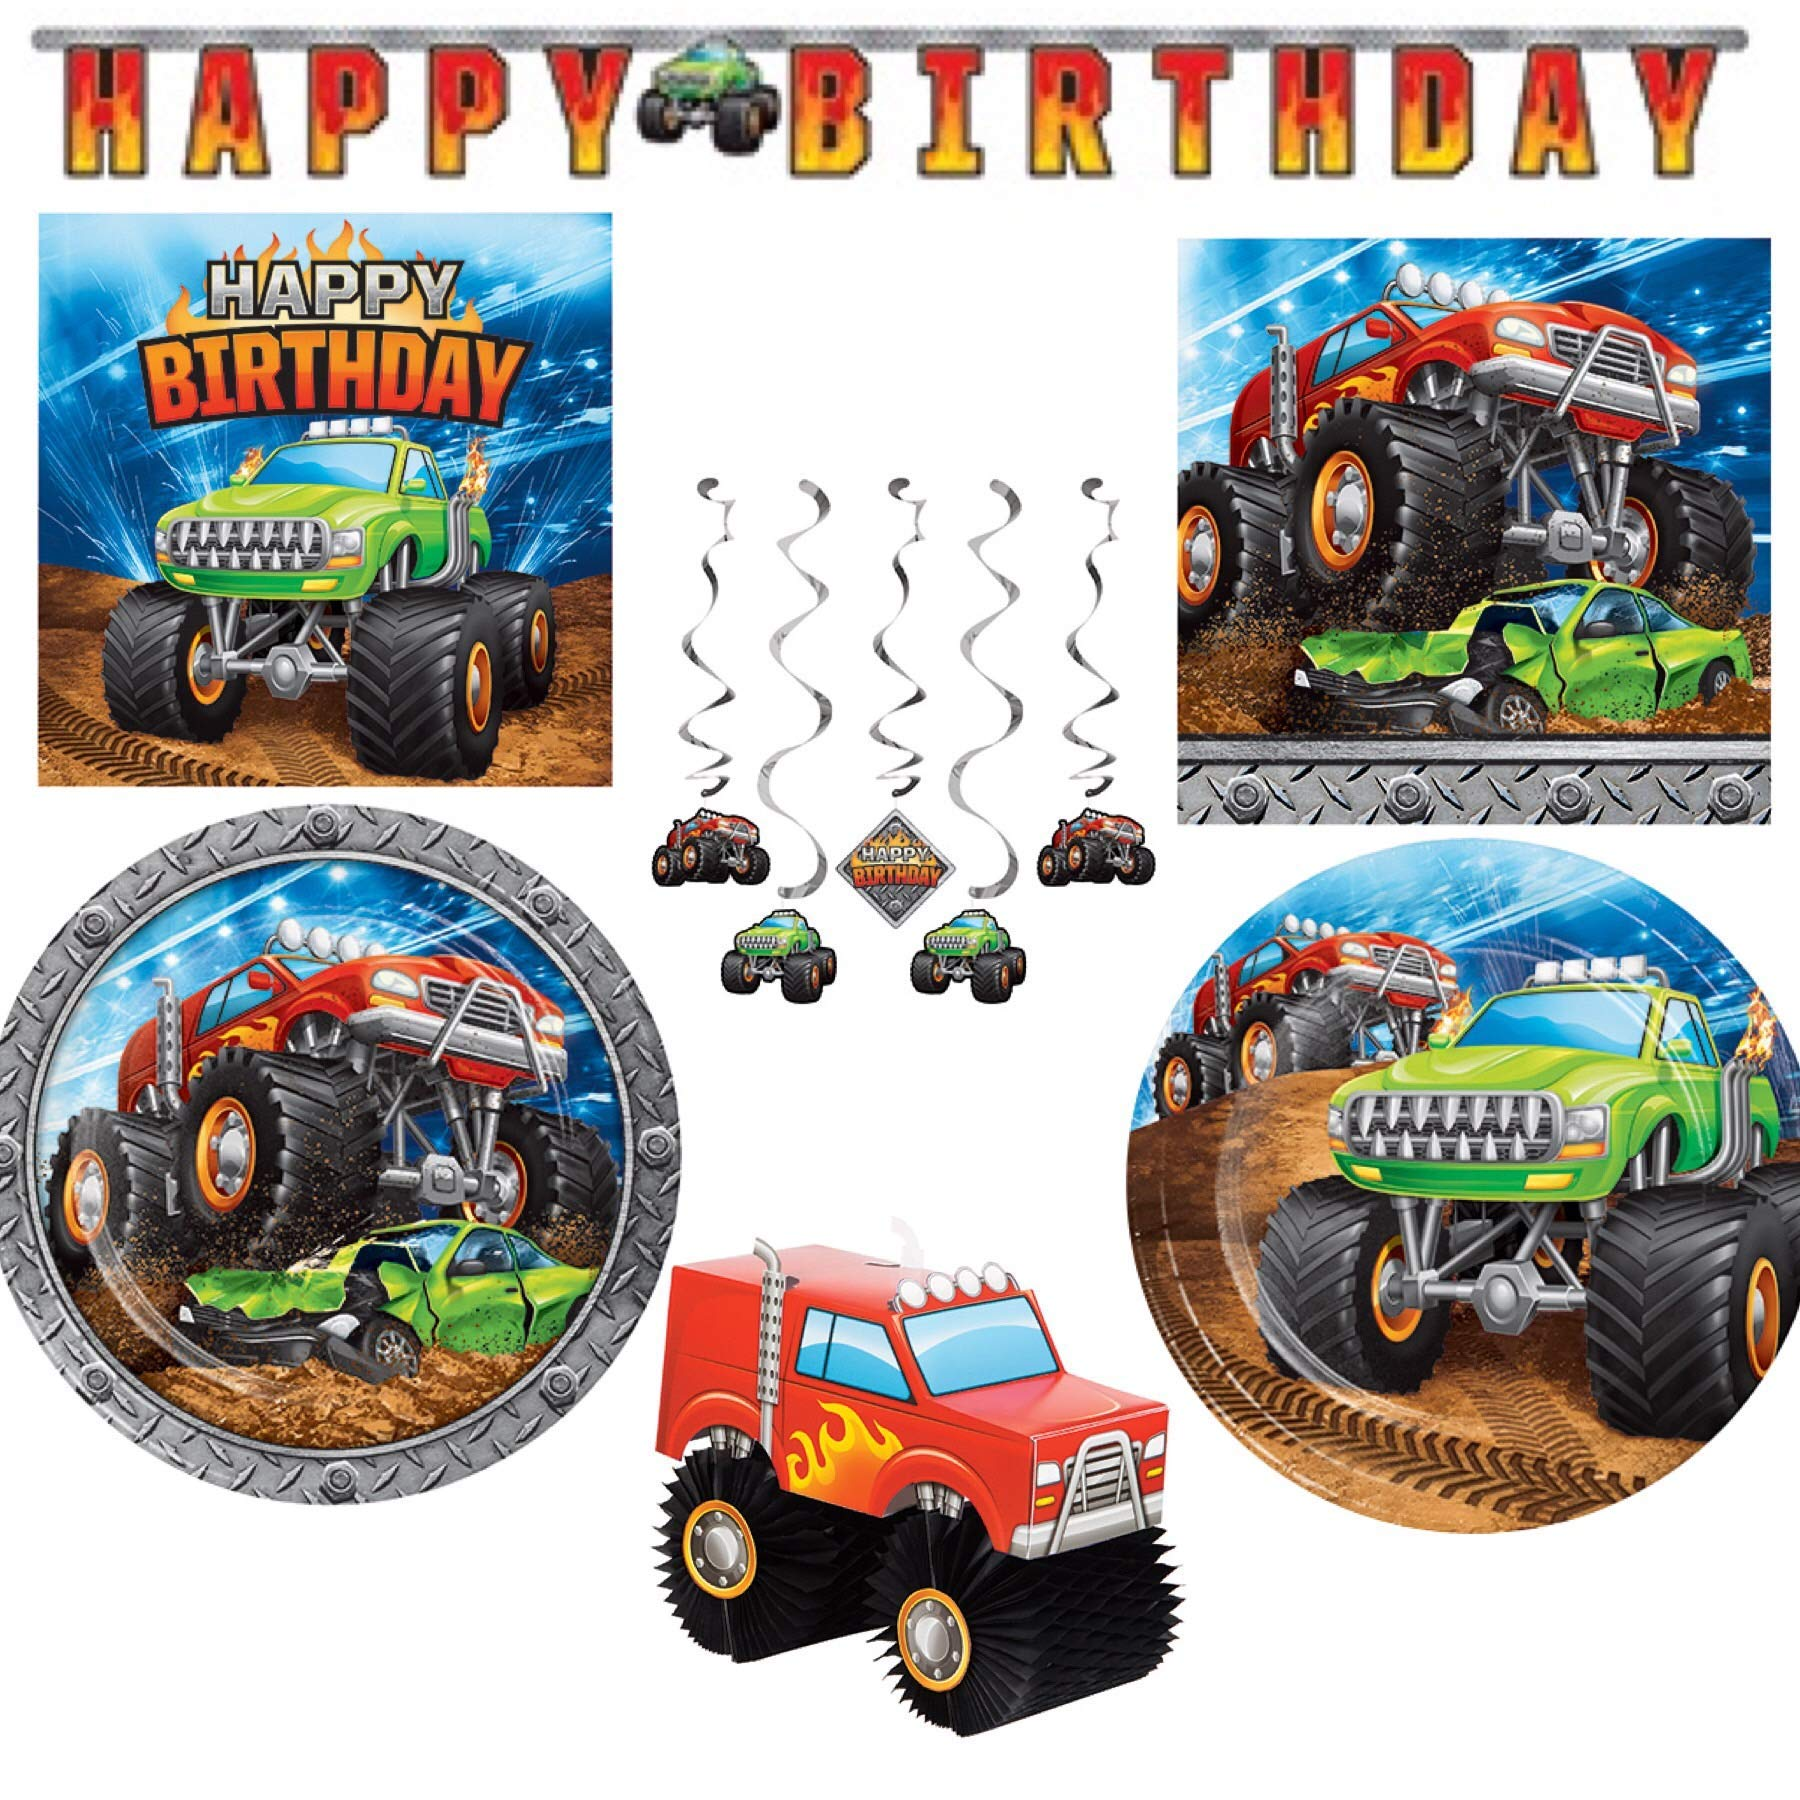 Olive Occasions Monster Truck Themed Paper Party Supplies 16 Dinner Plates, 16 Cake Plates, 16 Lunch Napkins, 16 Beverage Napkins, Banner, Centerpiece, Dizzy Danglers, Recipe